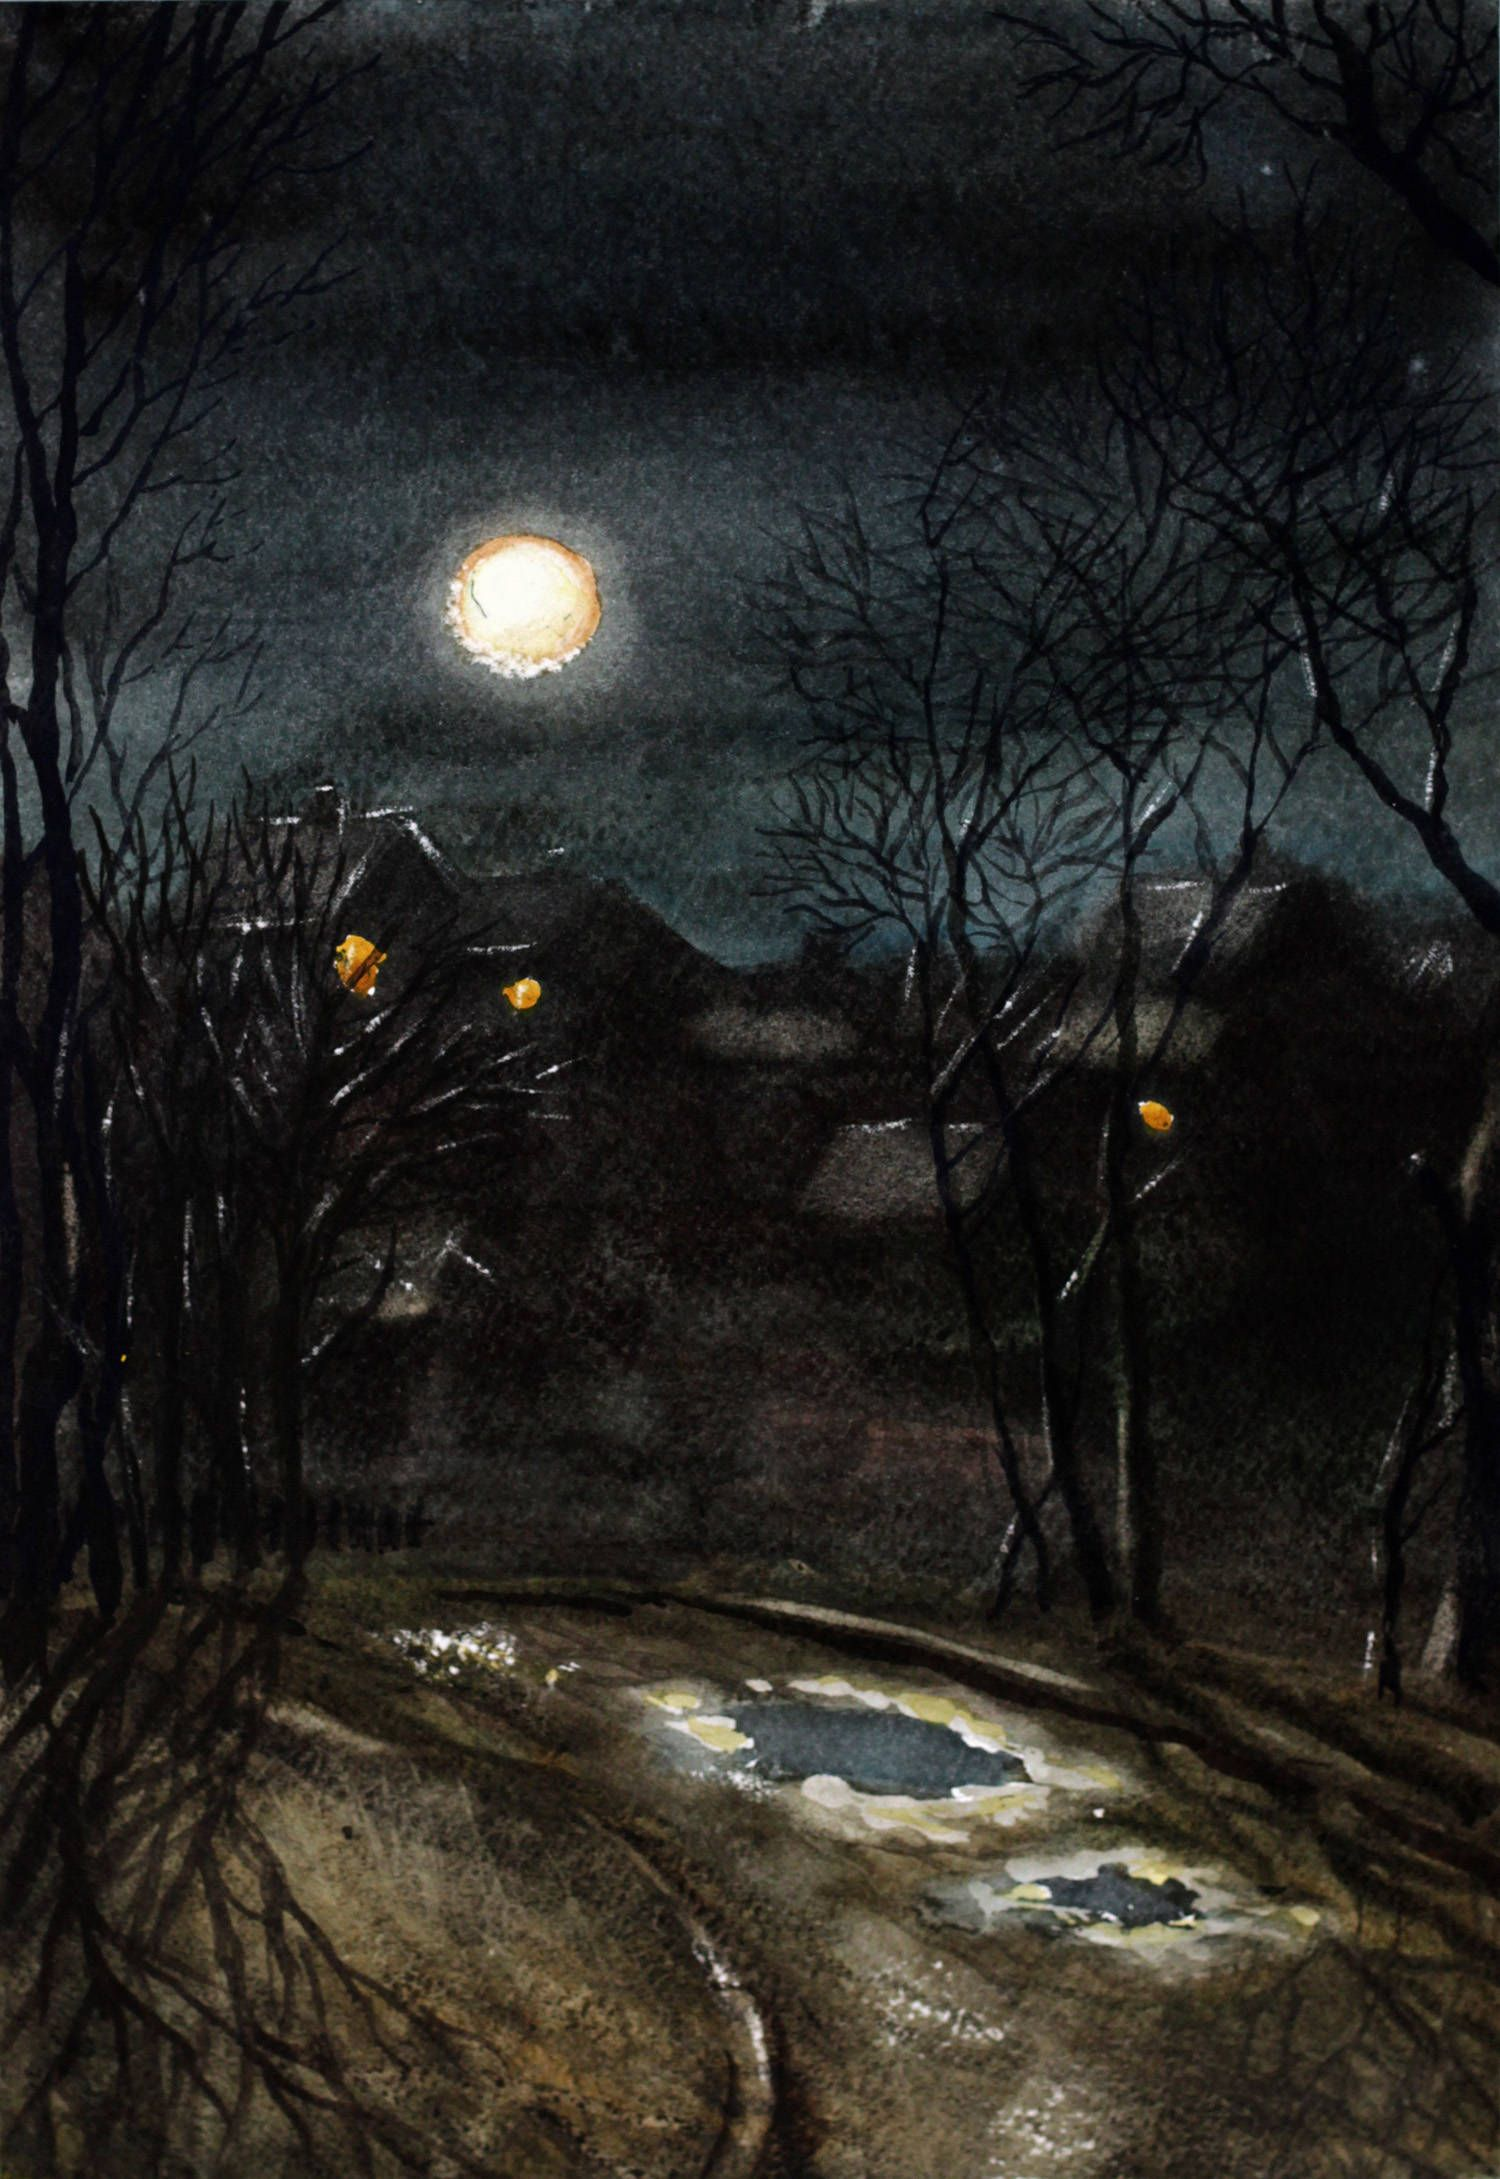 Moonlight Night Painting Watercolor Landscape Original European Art Houses Dark Blue Gary Holiday Gift For Her Him Gallery Wall In 2020 Night Painting Night Art Night Landscape